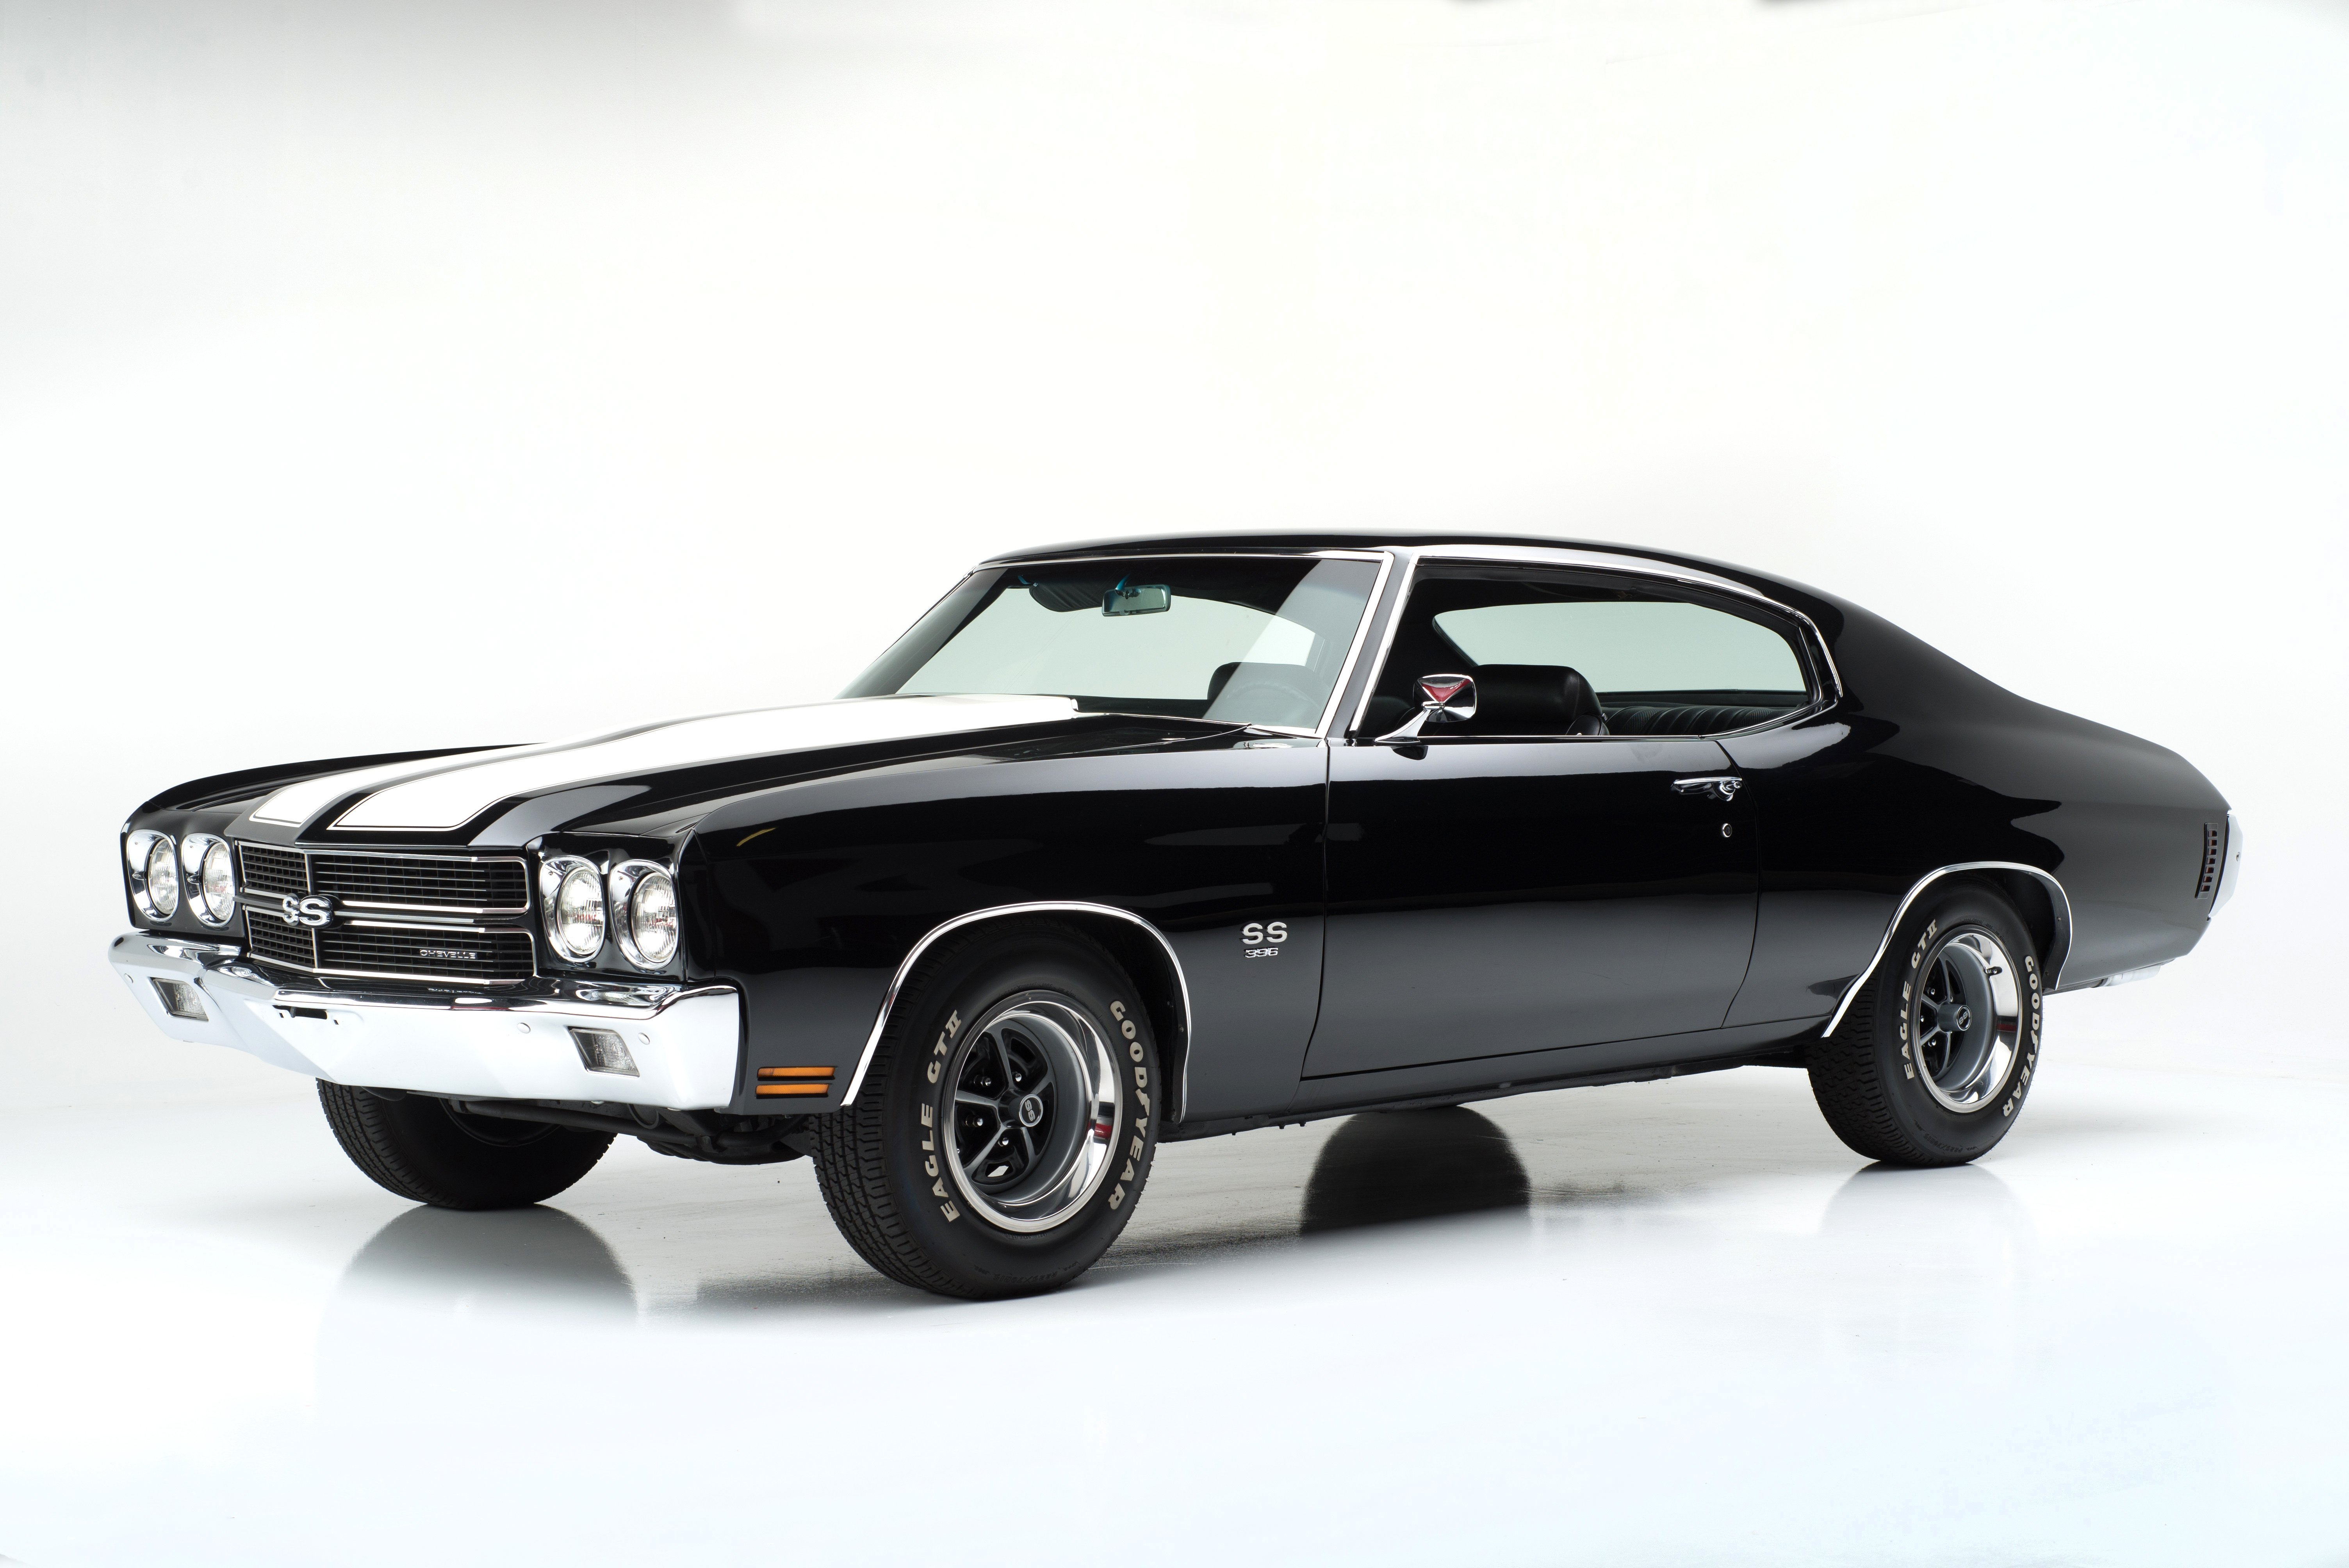 1970 CHEVROLET CHEVELLE SS 396 muscle classic s-s d ...